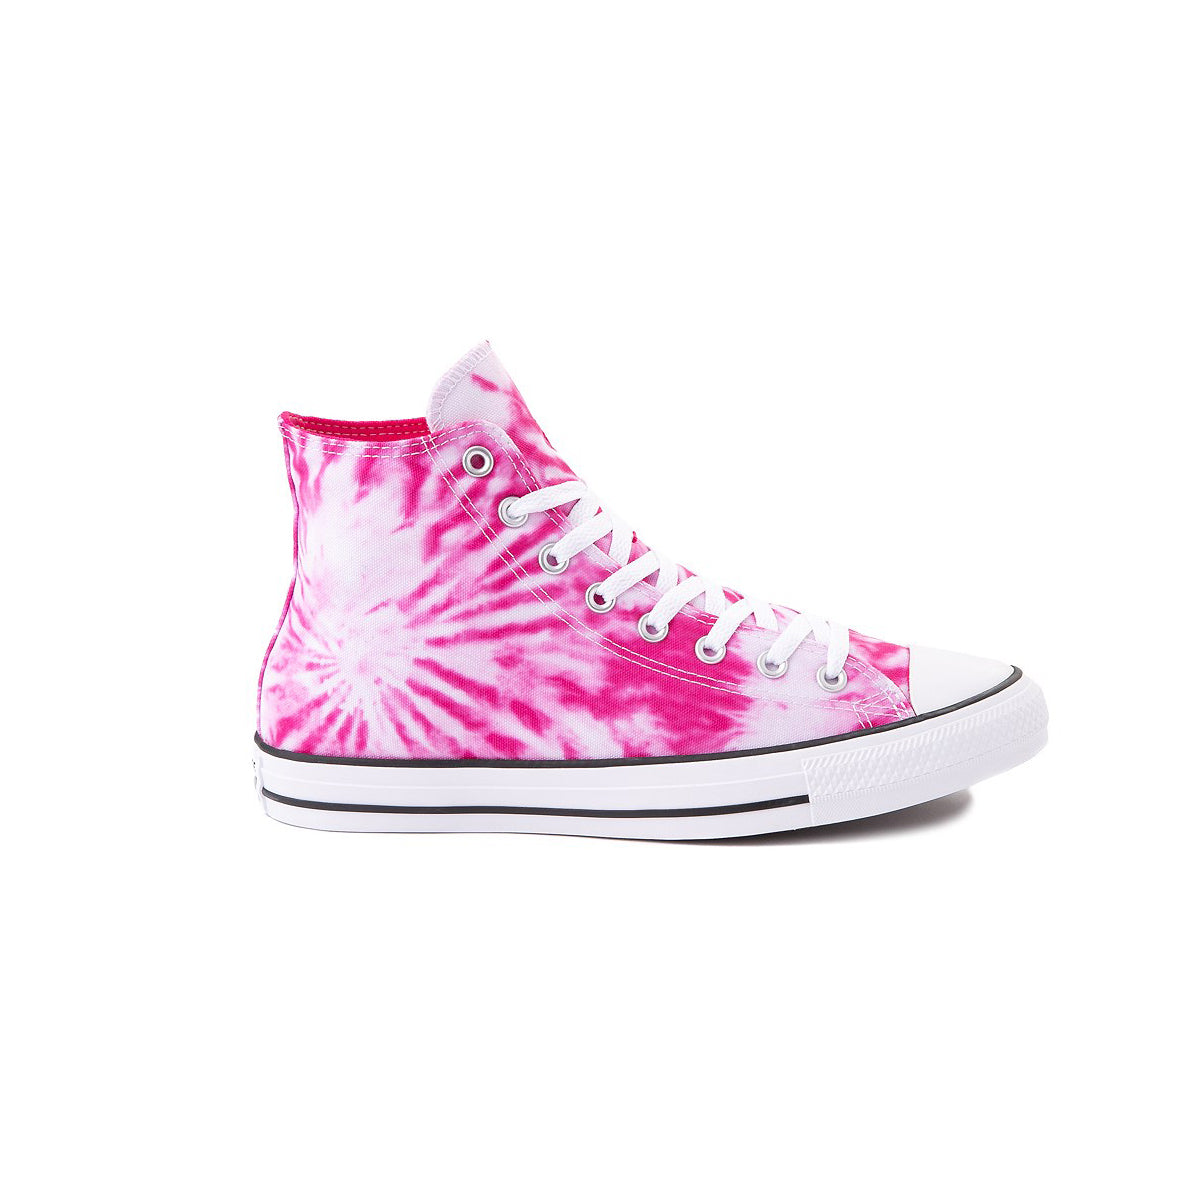 CONVERSE CHUCK TAYLOR ALL STAR TIE DYE TWISTED VACATION HI UNISEX SNEAKERS 167928F